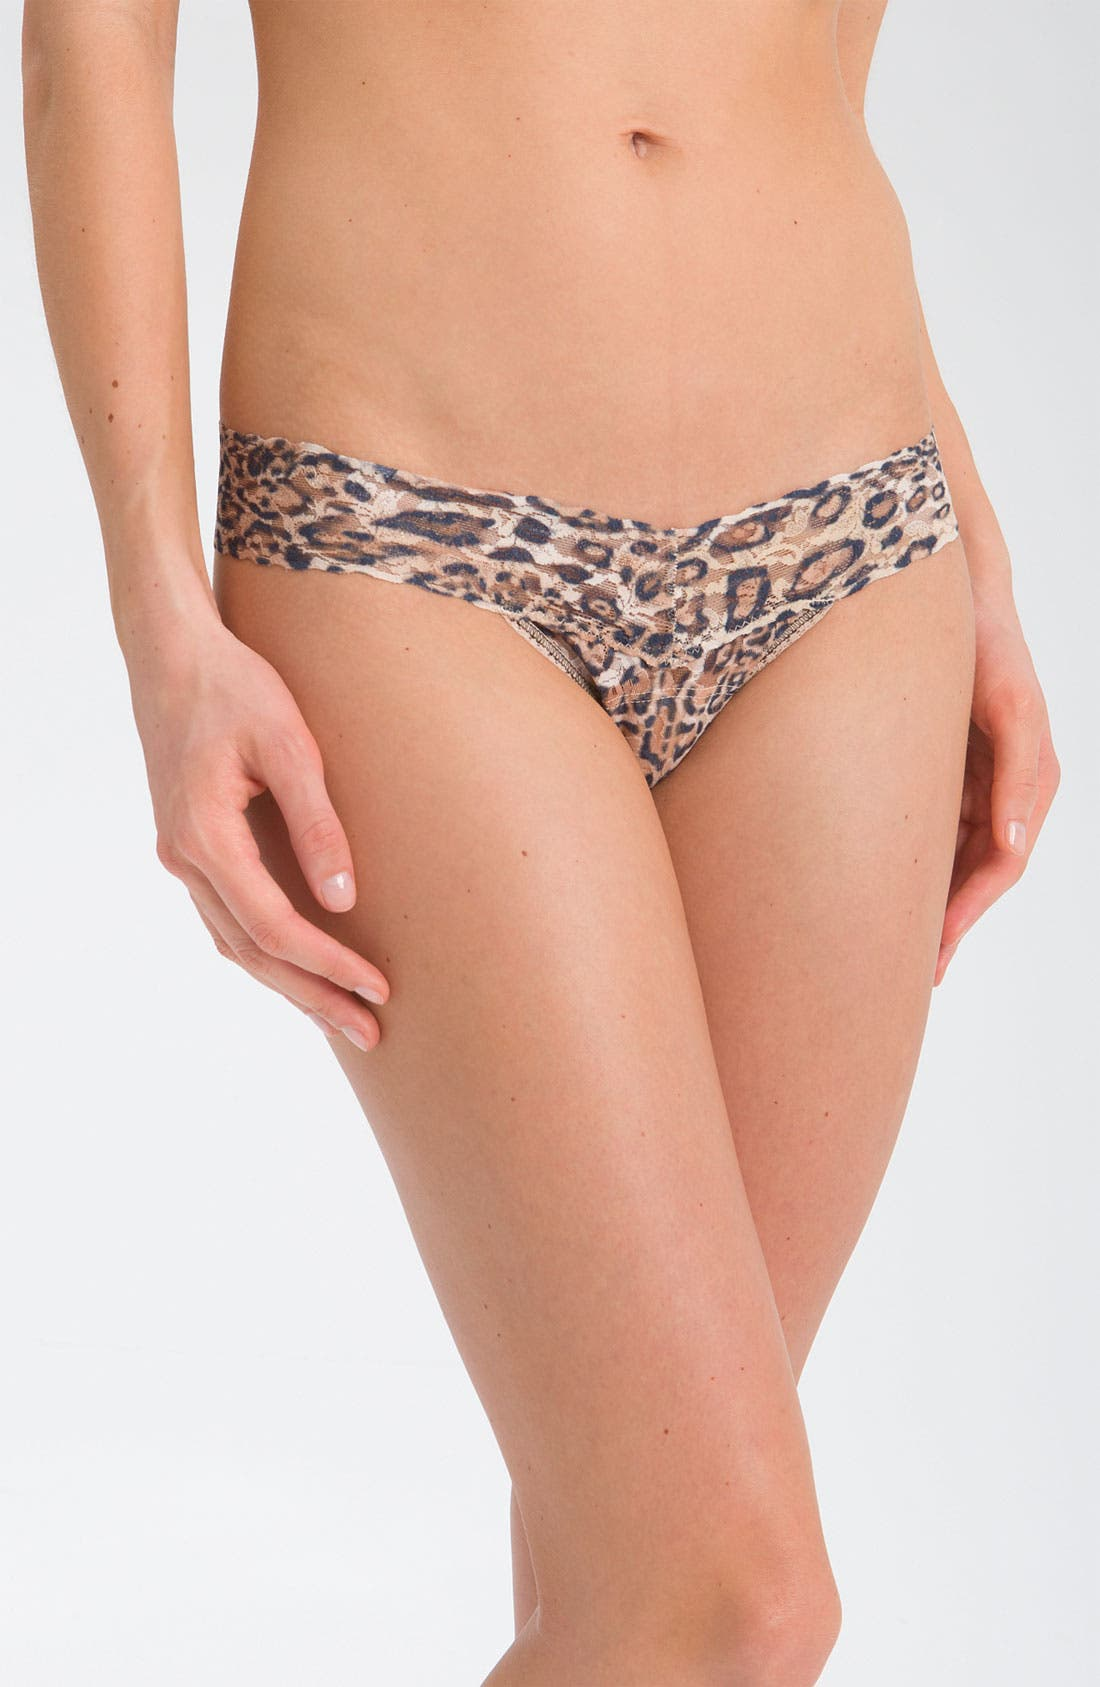 Alternate Image 1 Selected - Hanky Panky 'Leopard' Low Rise Thong